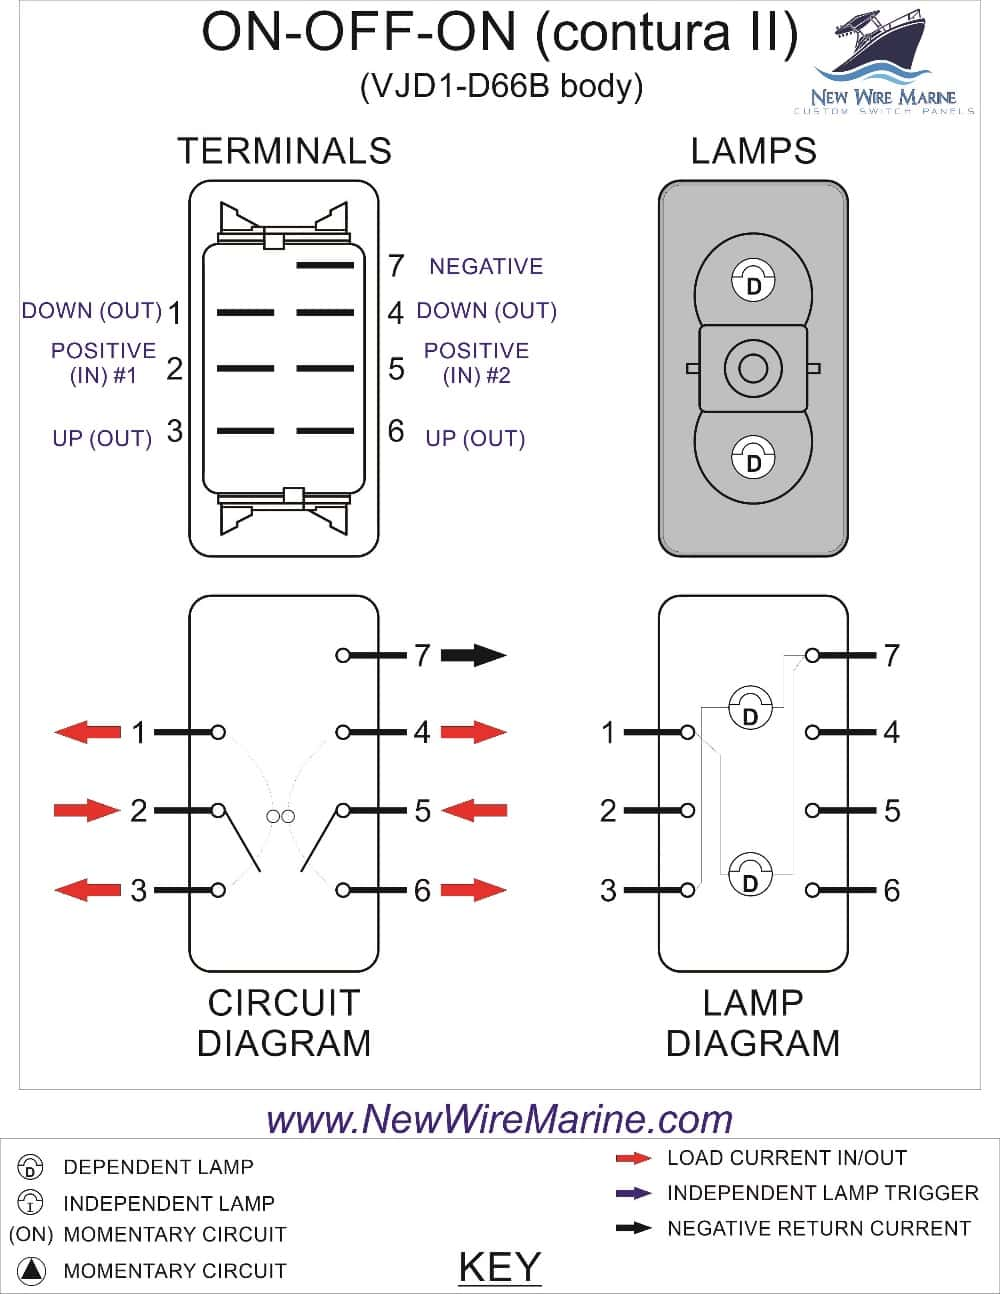 ON-OFF-ON rocker switch wiring diagram